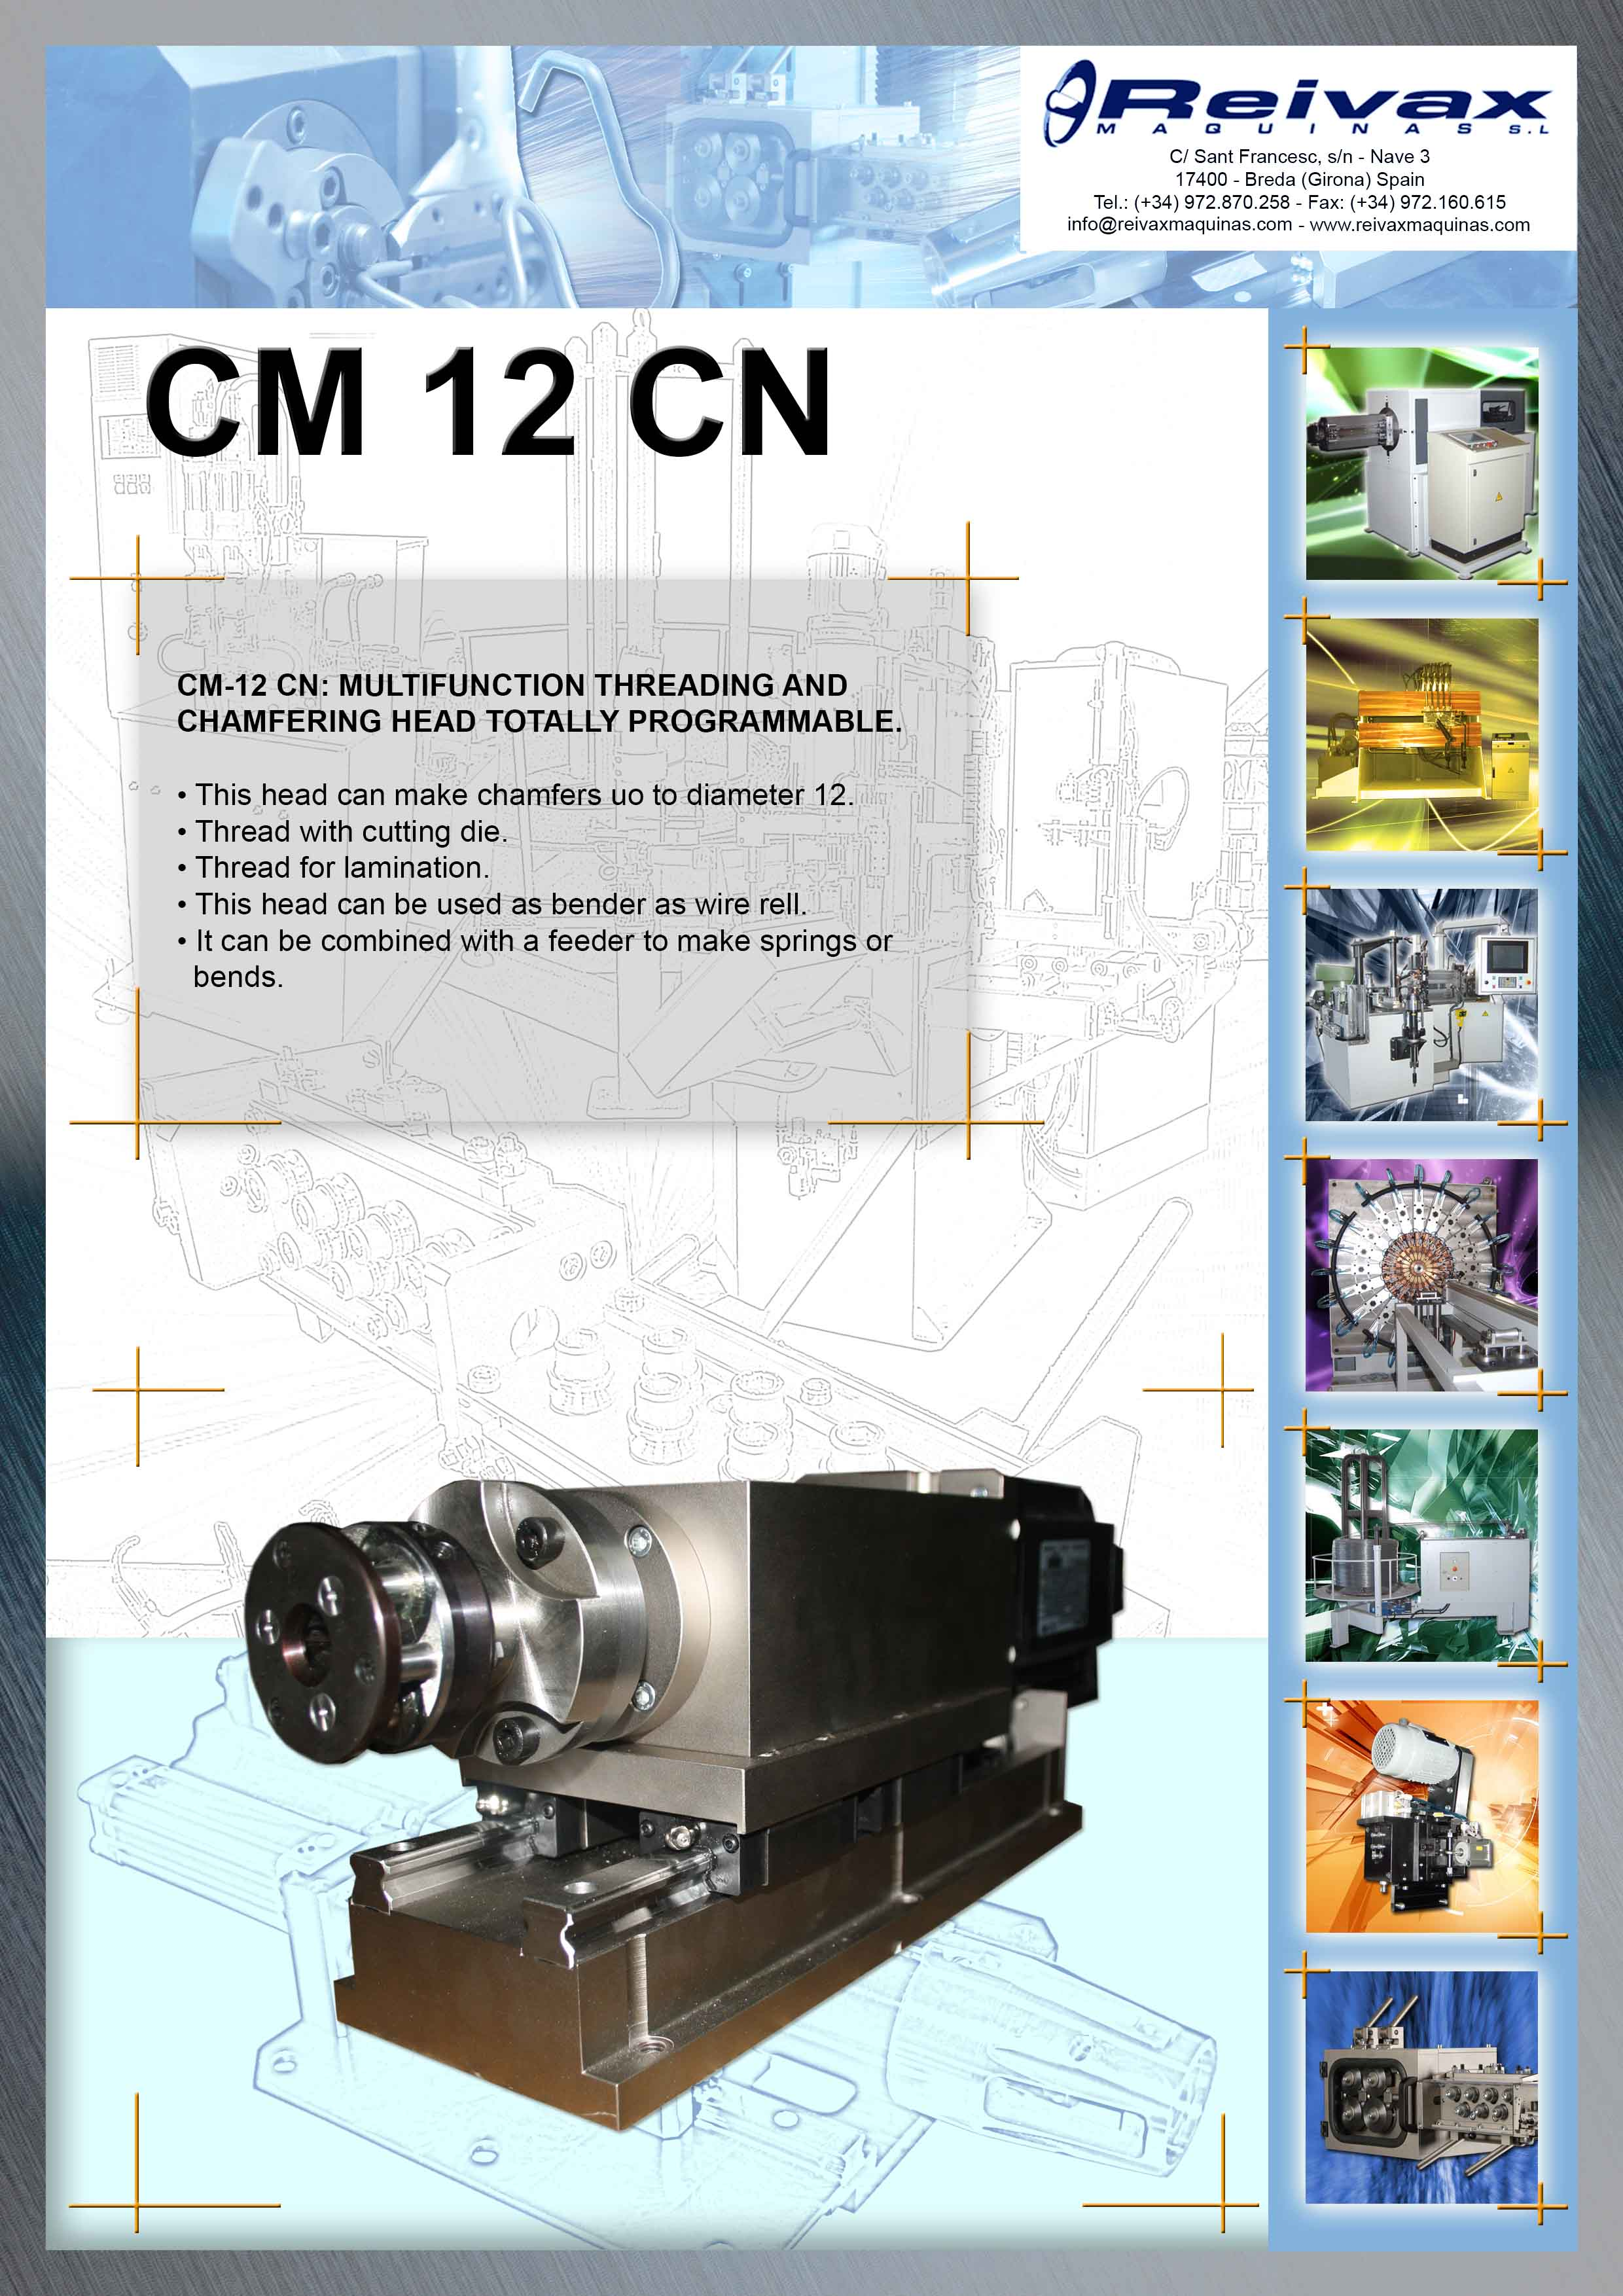 ReivaxMaquinas: Technical Details Multifunction Threading and Chamfering  Tool CM 12 CN